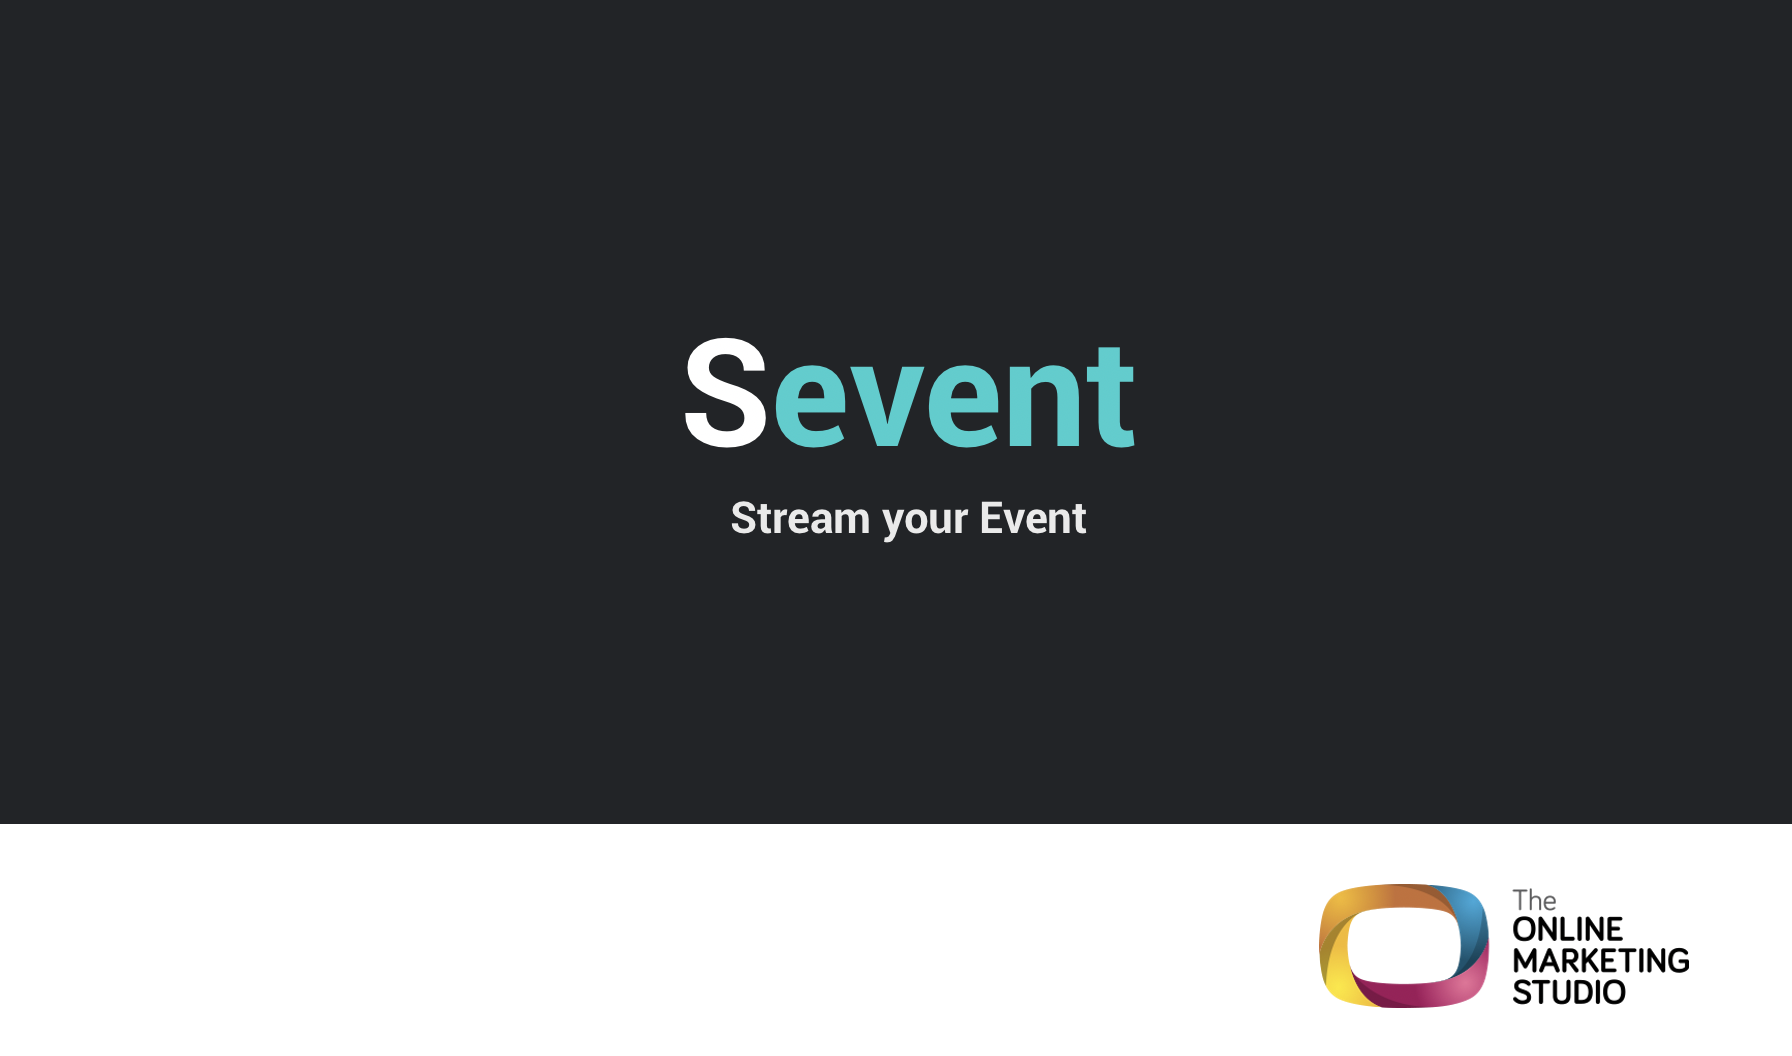 Sevent - Plataforma de streamings privados de eventos